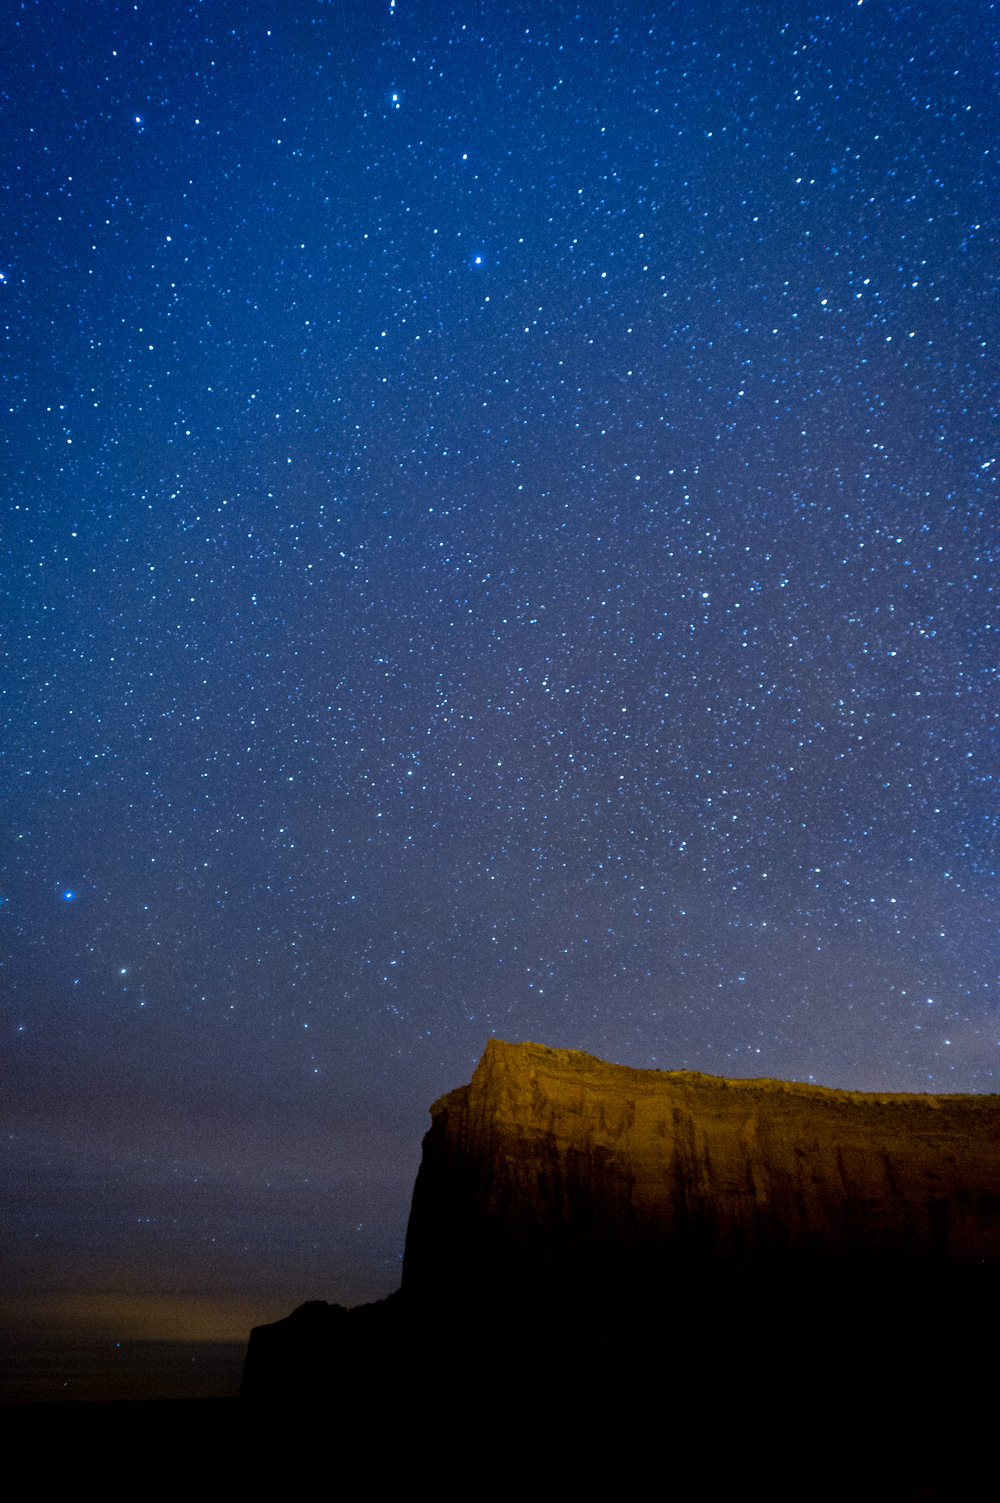 Monument Valley at 3 am. Camera settings: ISO 2000, 20 sec., f 2.8.